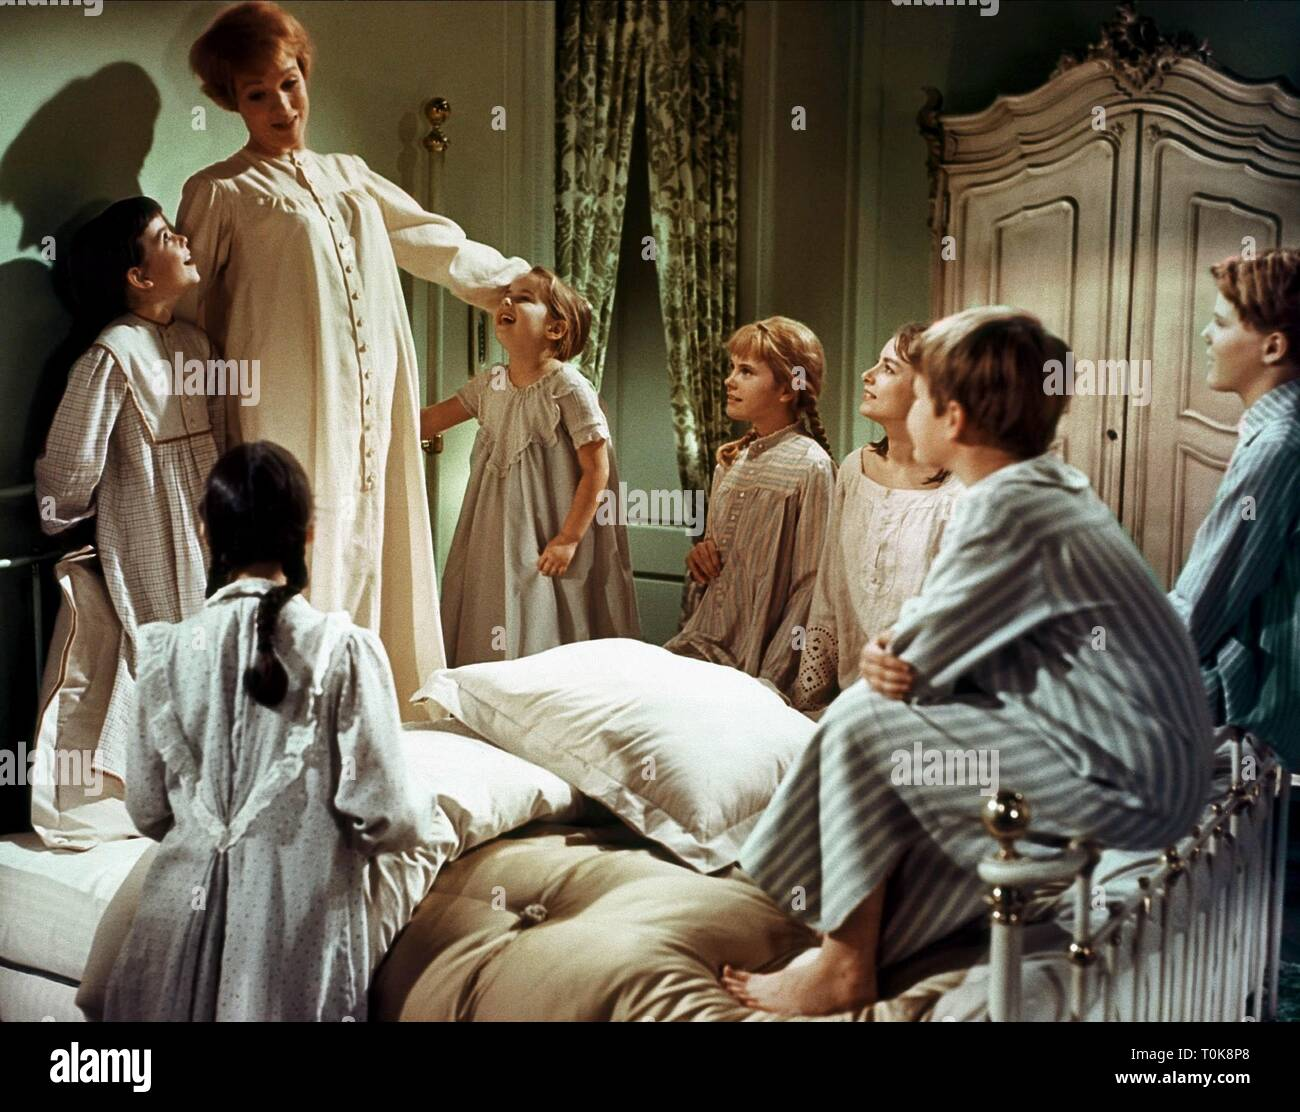 The Sound Of Music Stock Photos & The Sound Of Music Stock